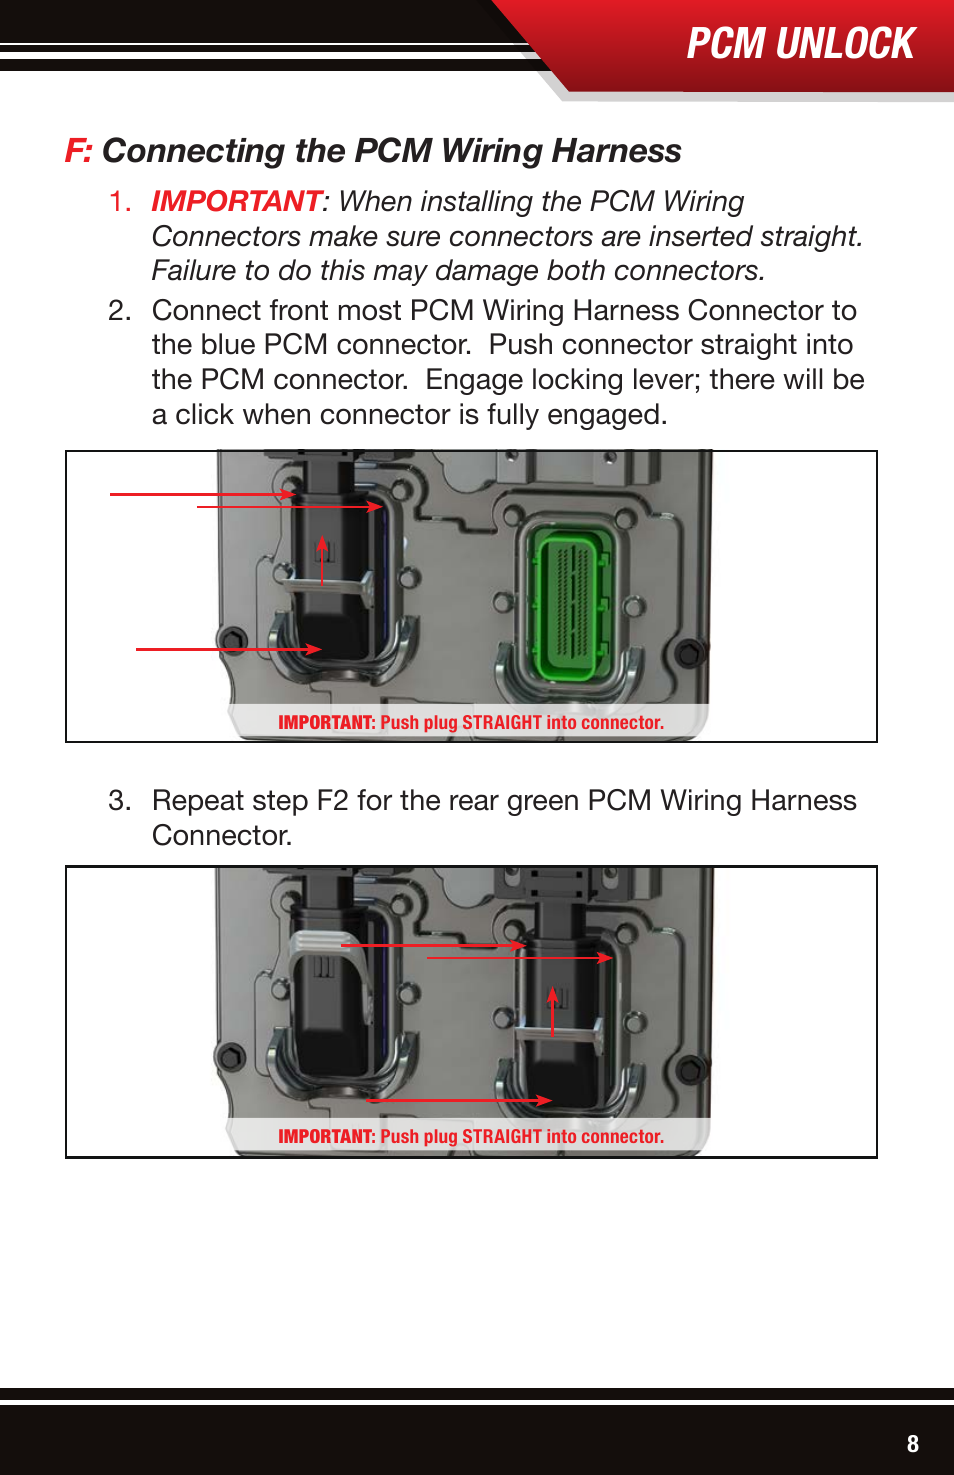 pcm unlock, f connecting the pcm wiring harness bully dog 42213 Pitbull Harness and Collars